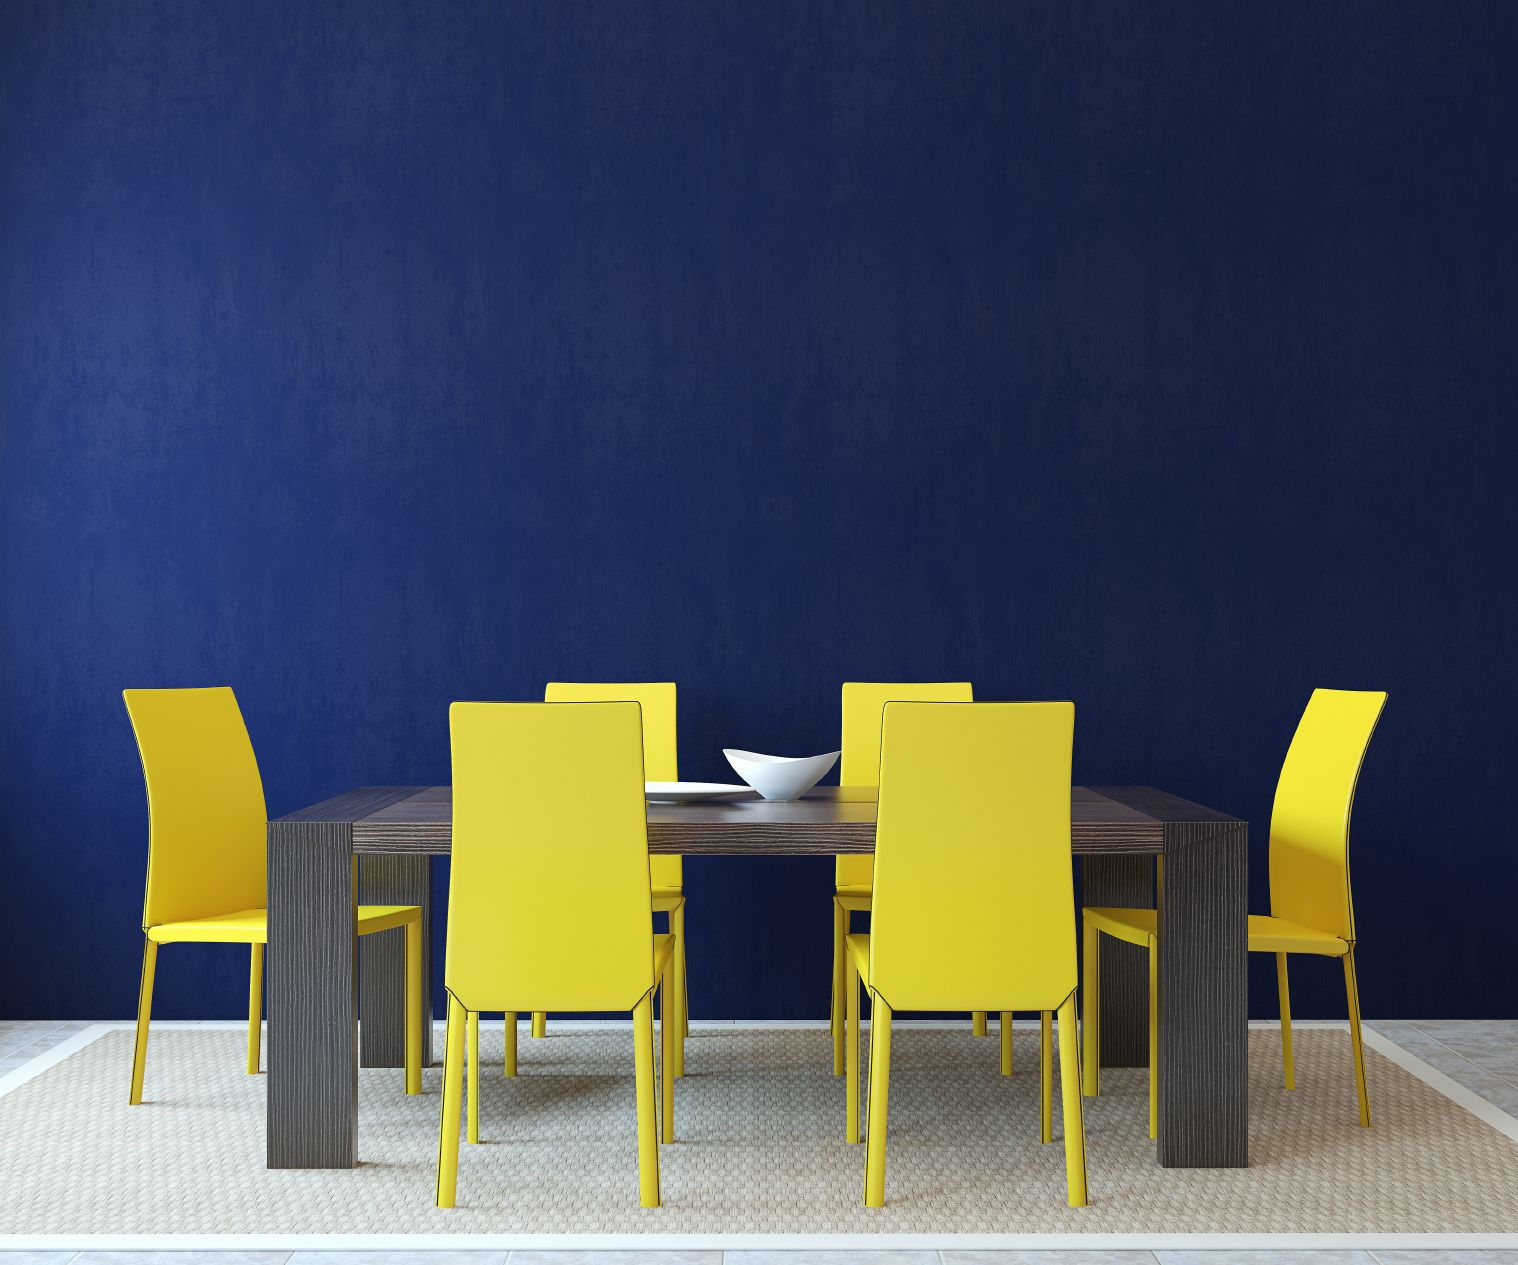 city value chair gallery dining room yellow chairs interior design ideas creative